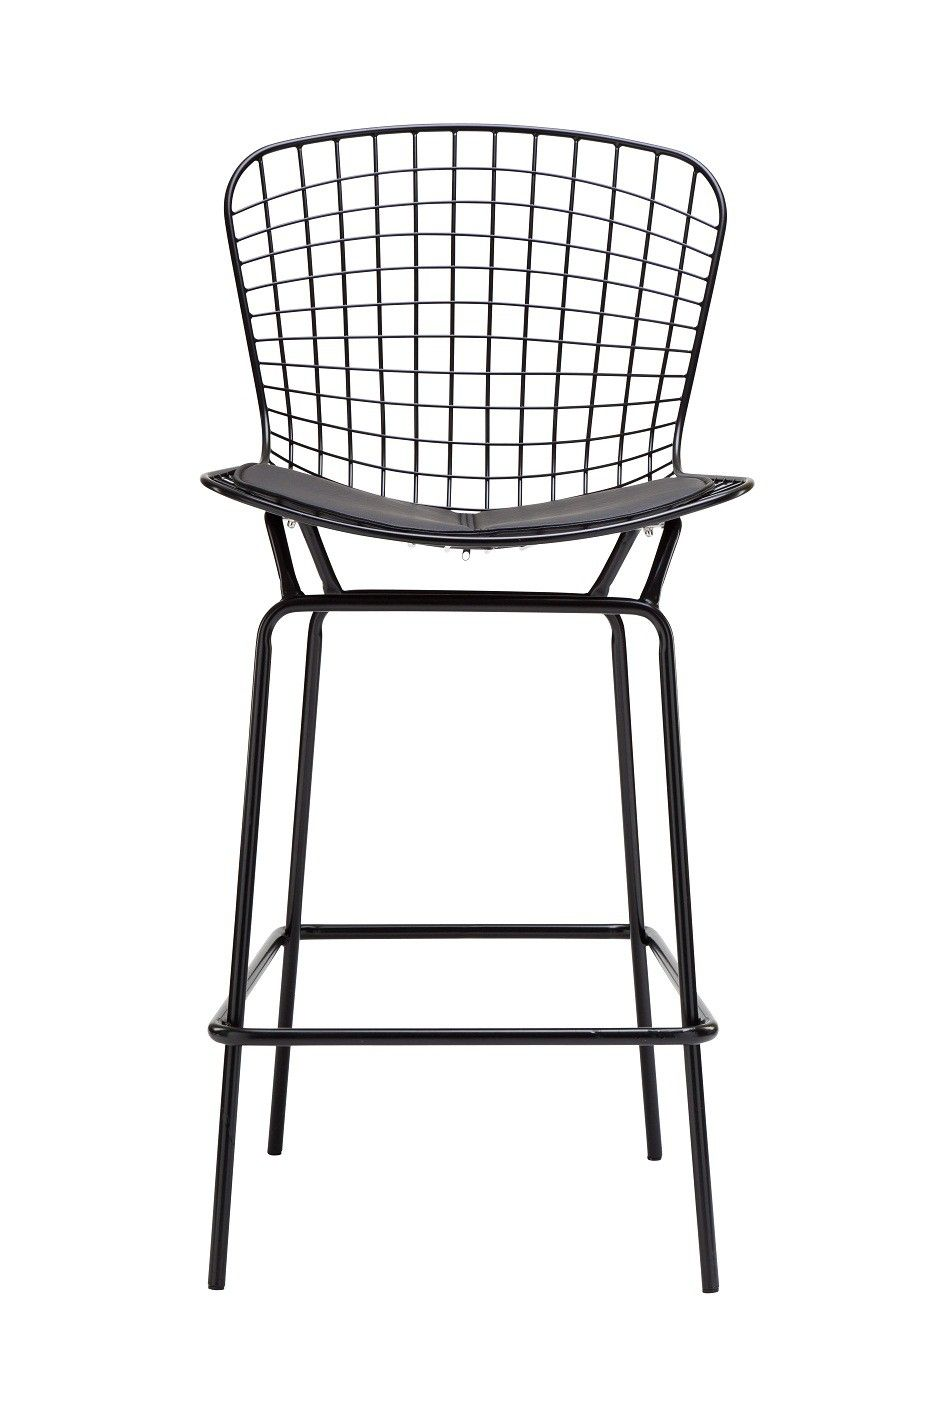 Best Of Bertoia Counter Stool Replica